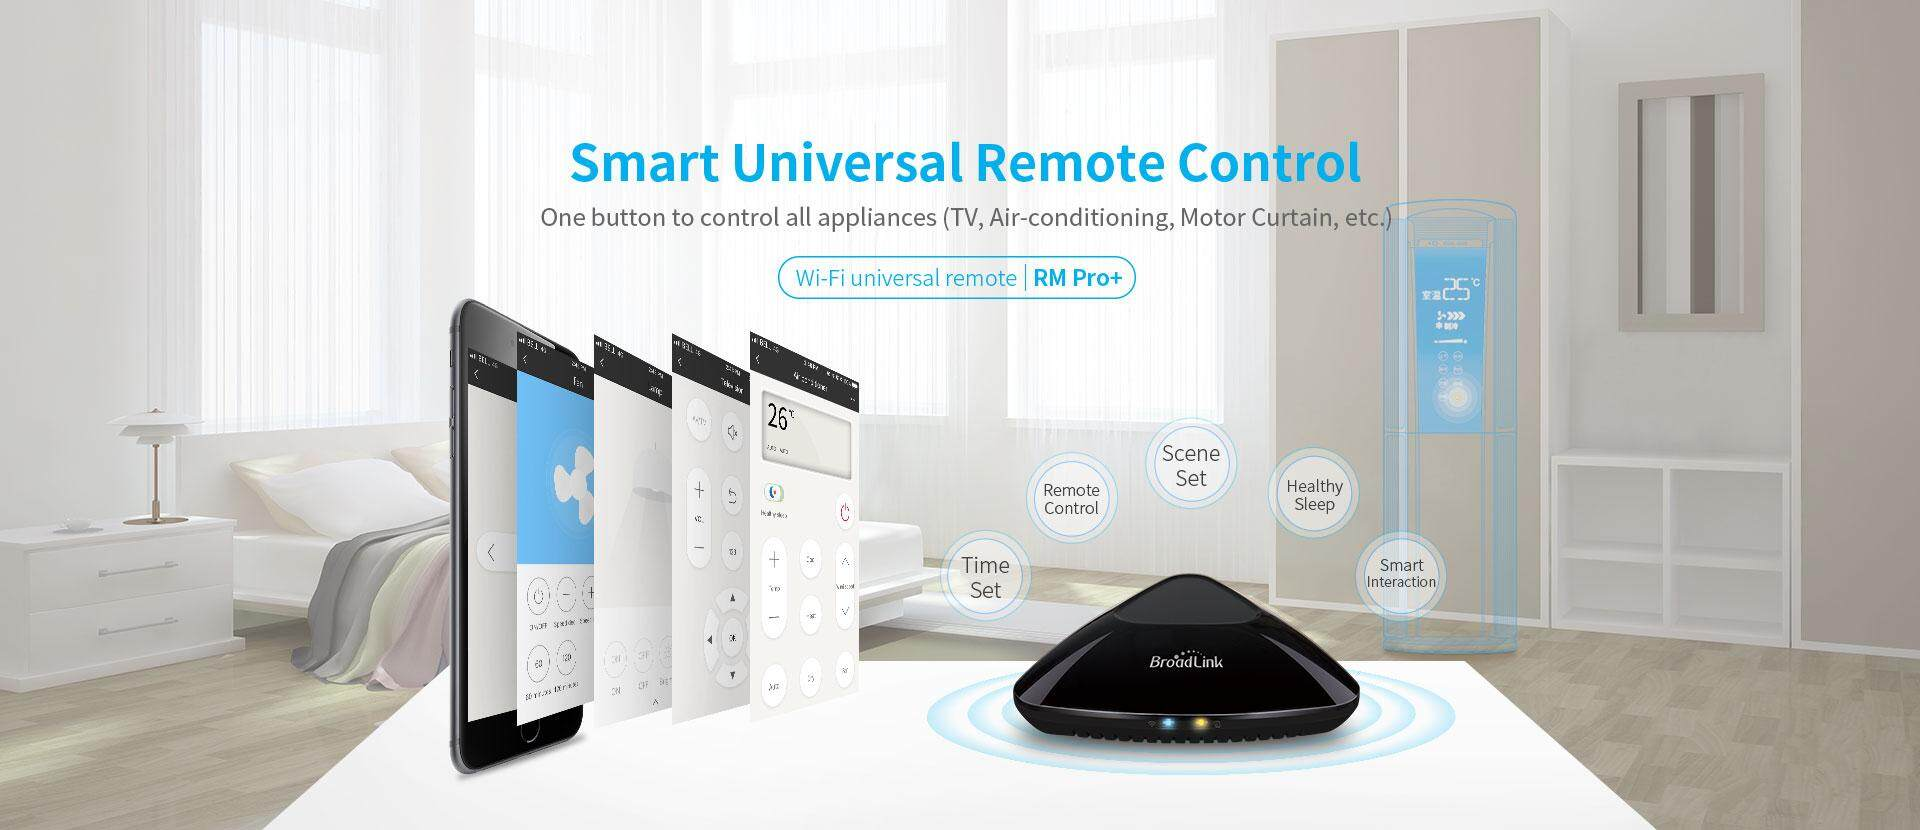 Broadlink RM pro+ DMS Smart Universal Remote Control